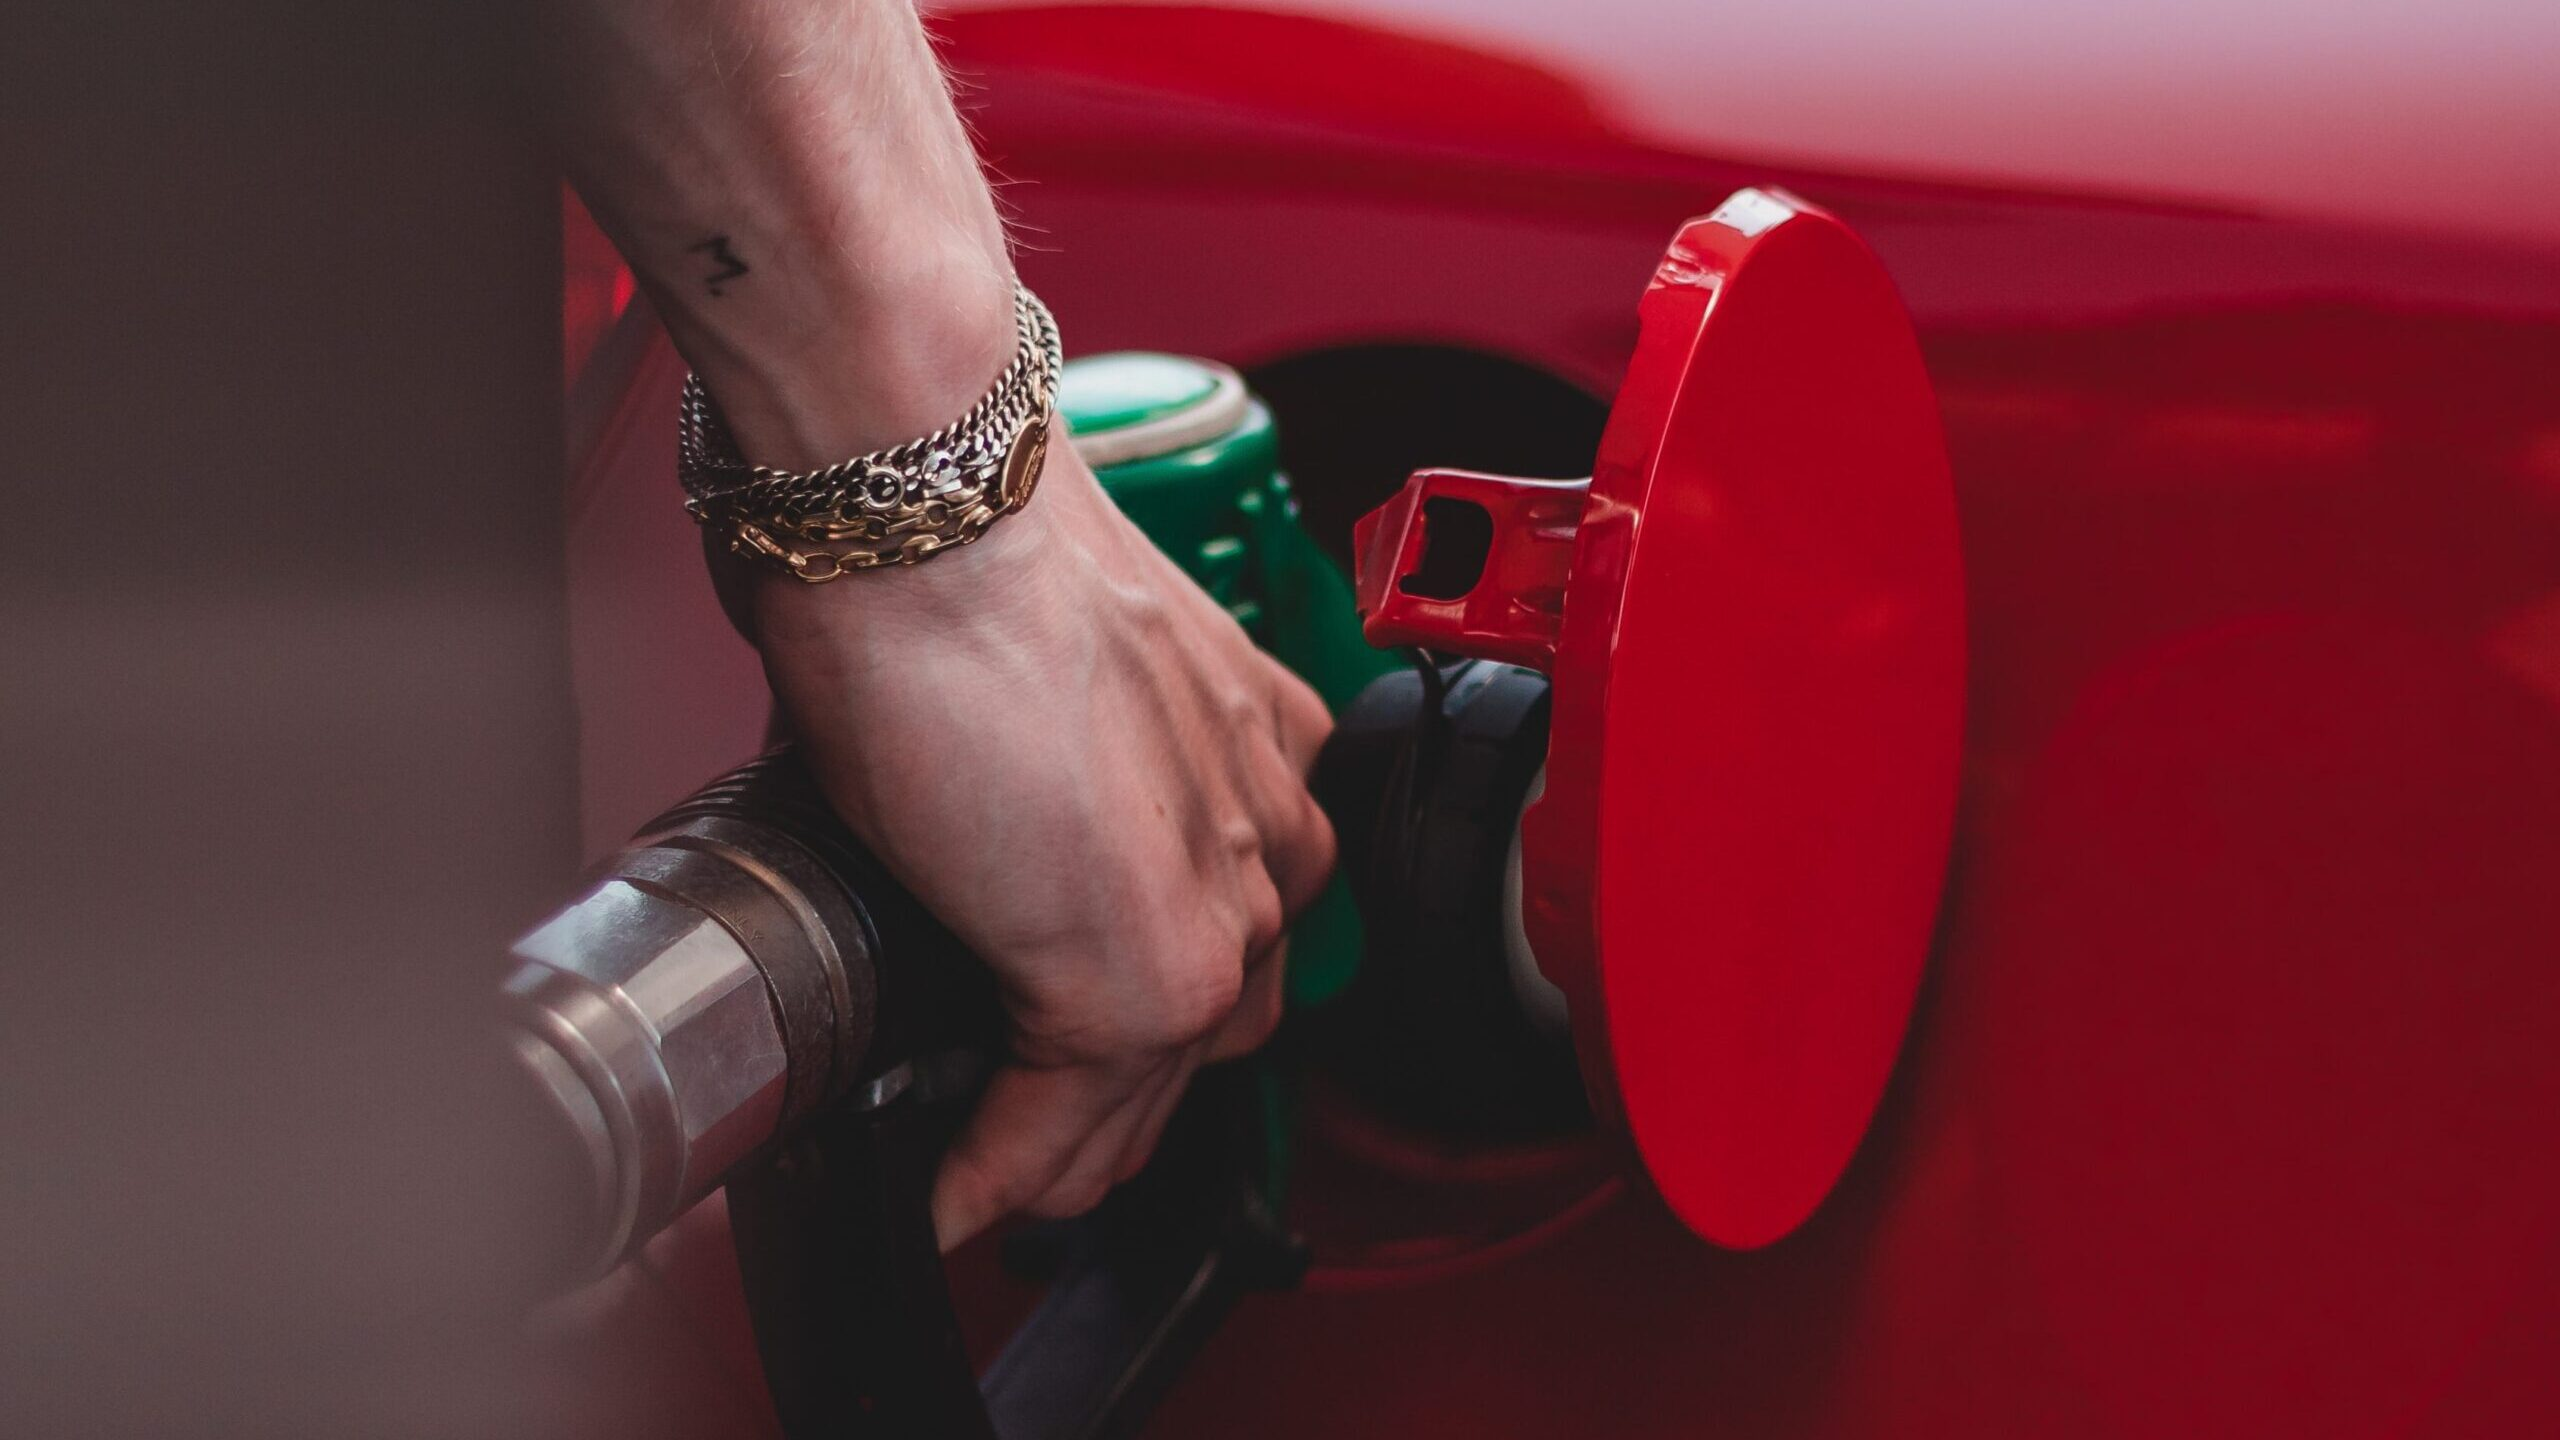 It is increasingly difficult to fill the tank with gasoline because its prices are constantly rising. (Wassim Chouak/Unsplash)